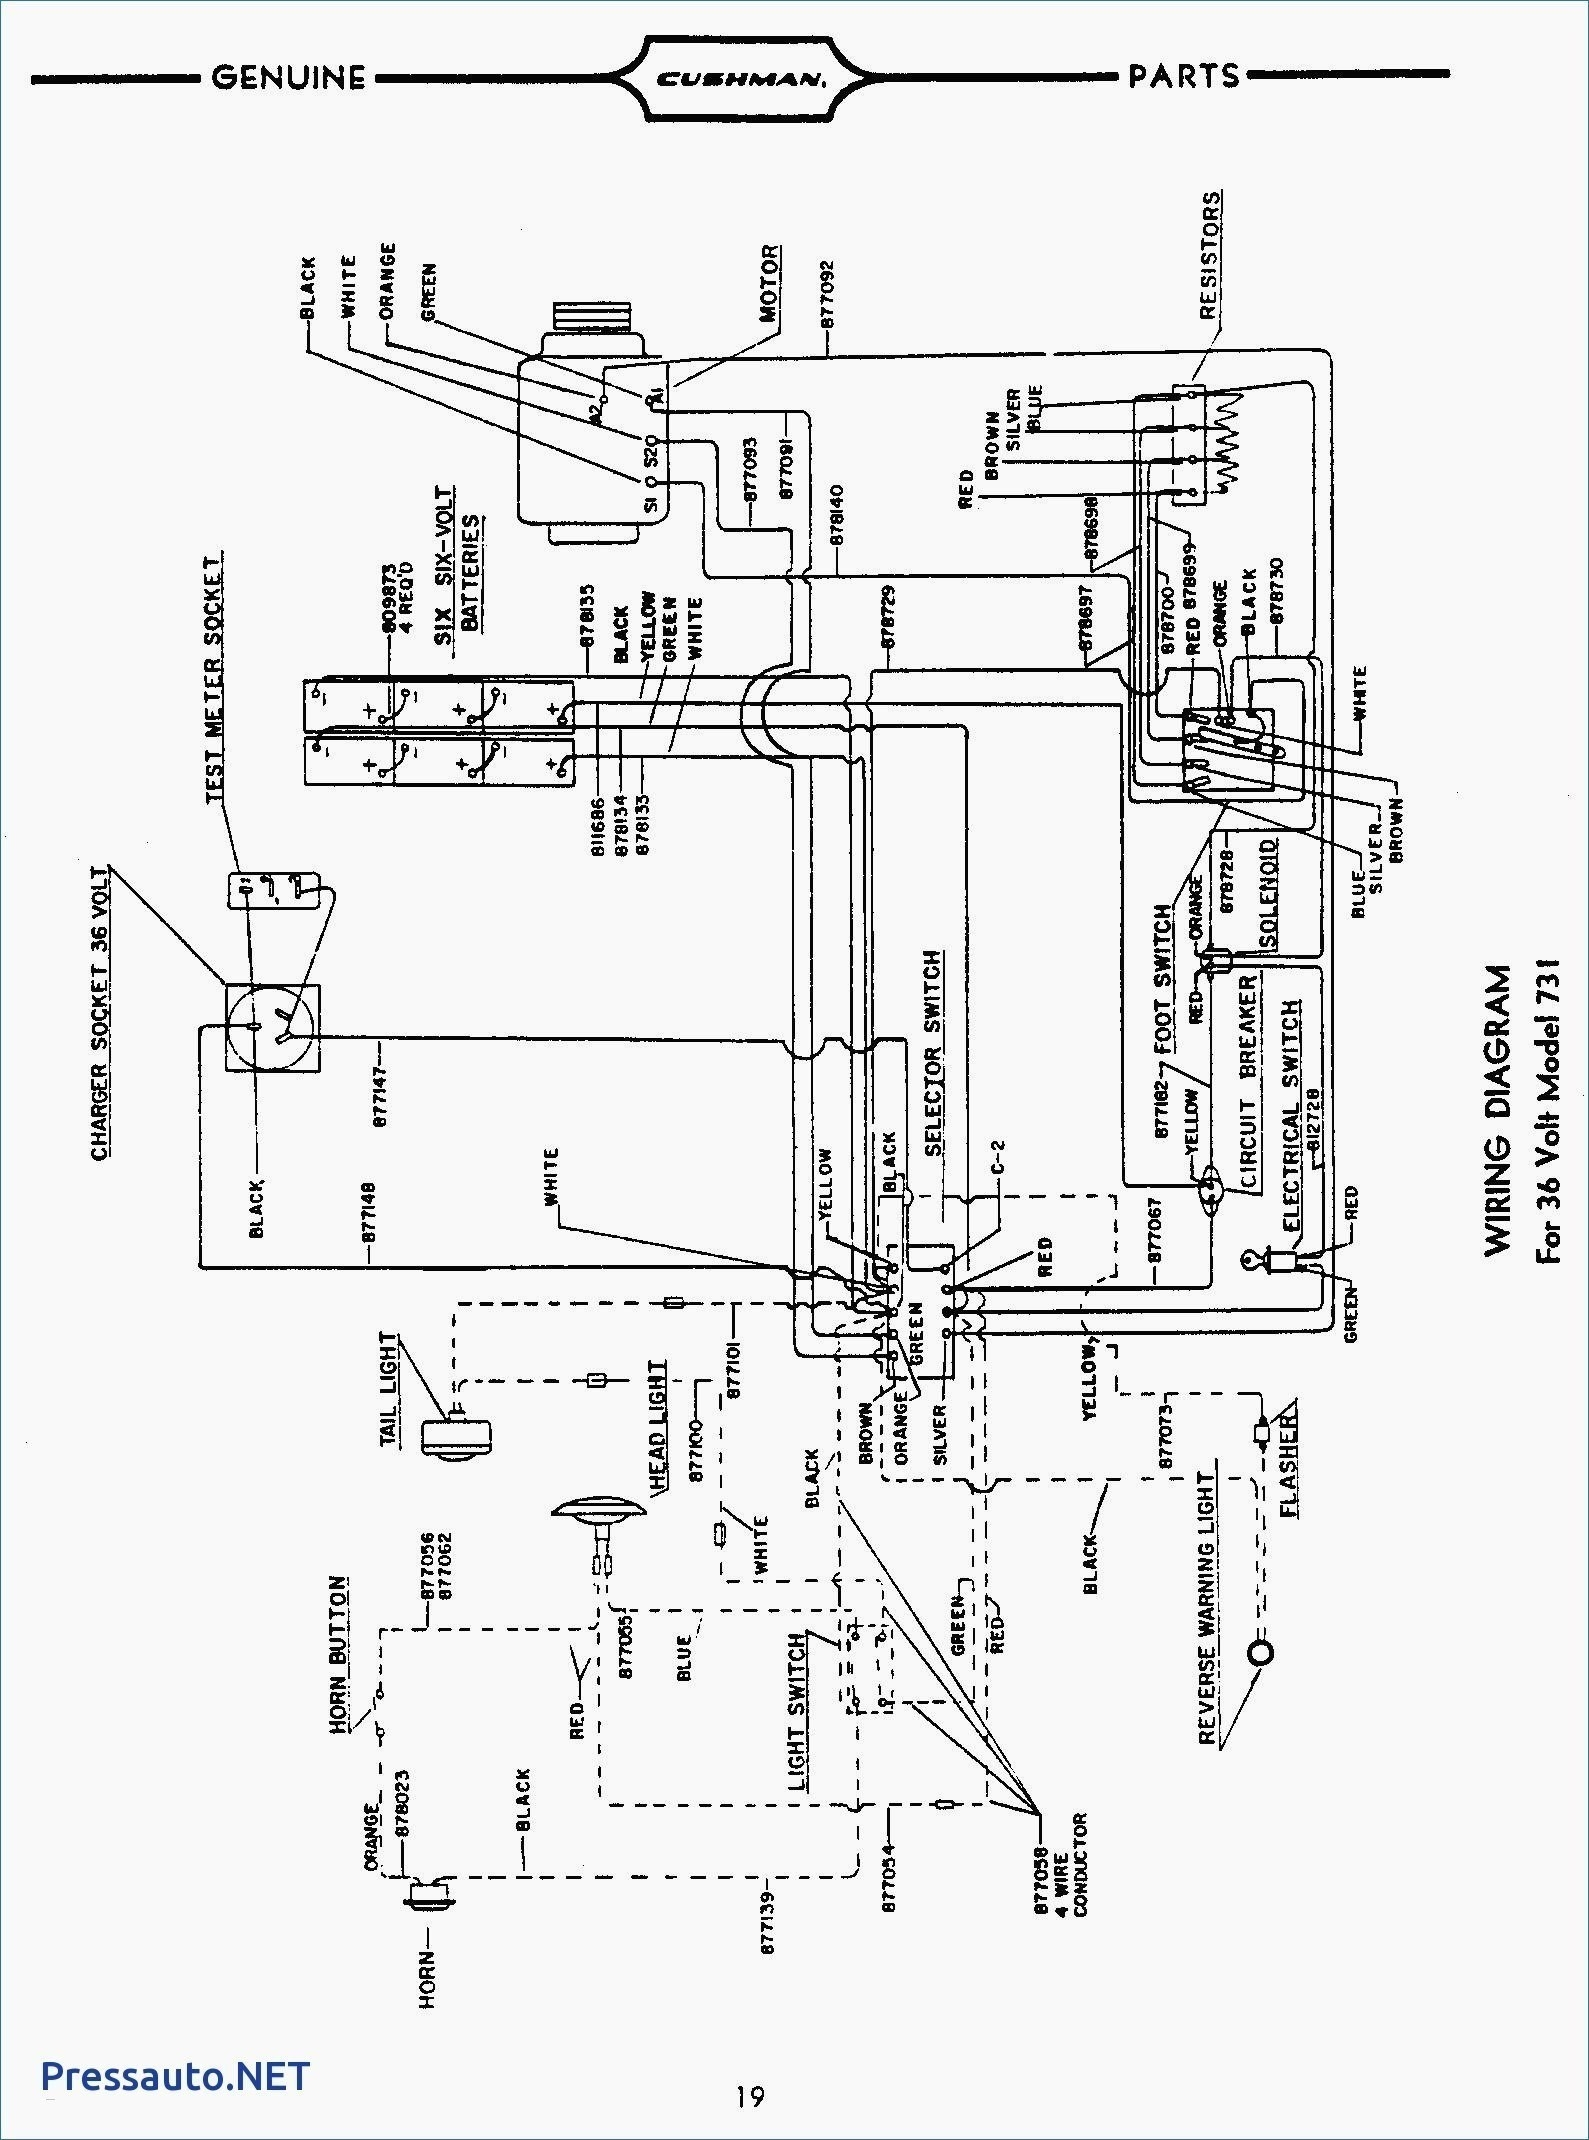 2000 ez go gas wiring diagram wiring diagrams 2001 EZ Go Wiring Diagram